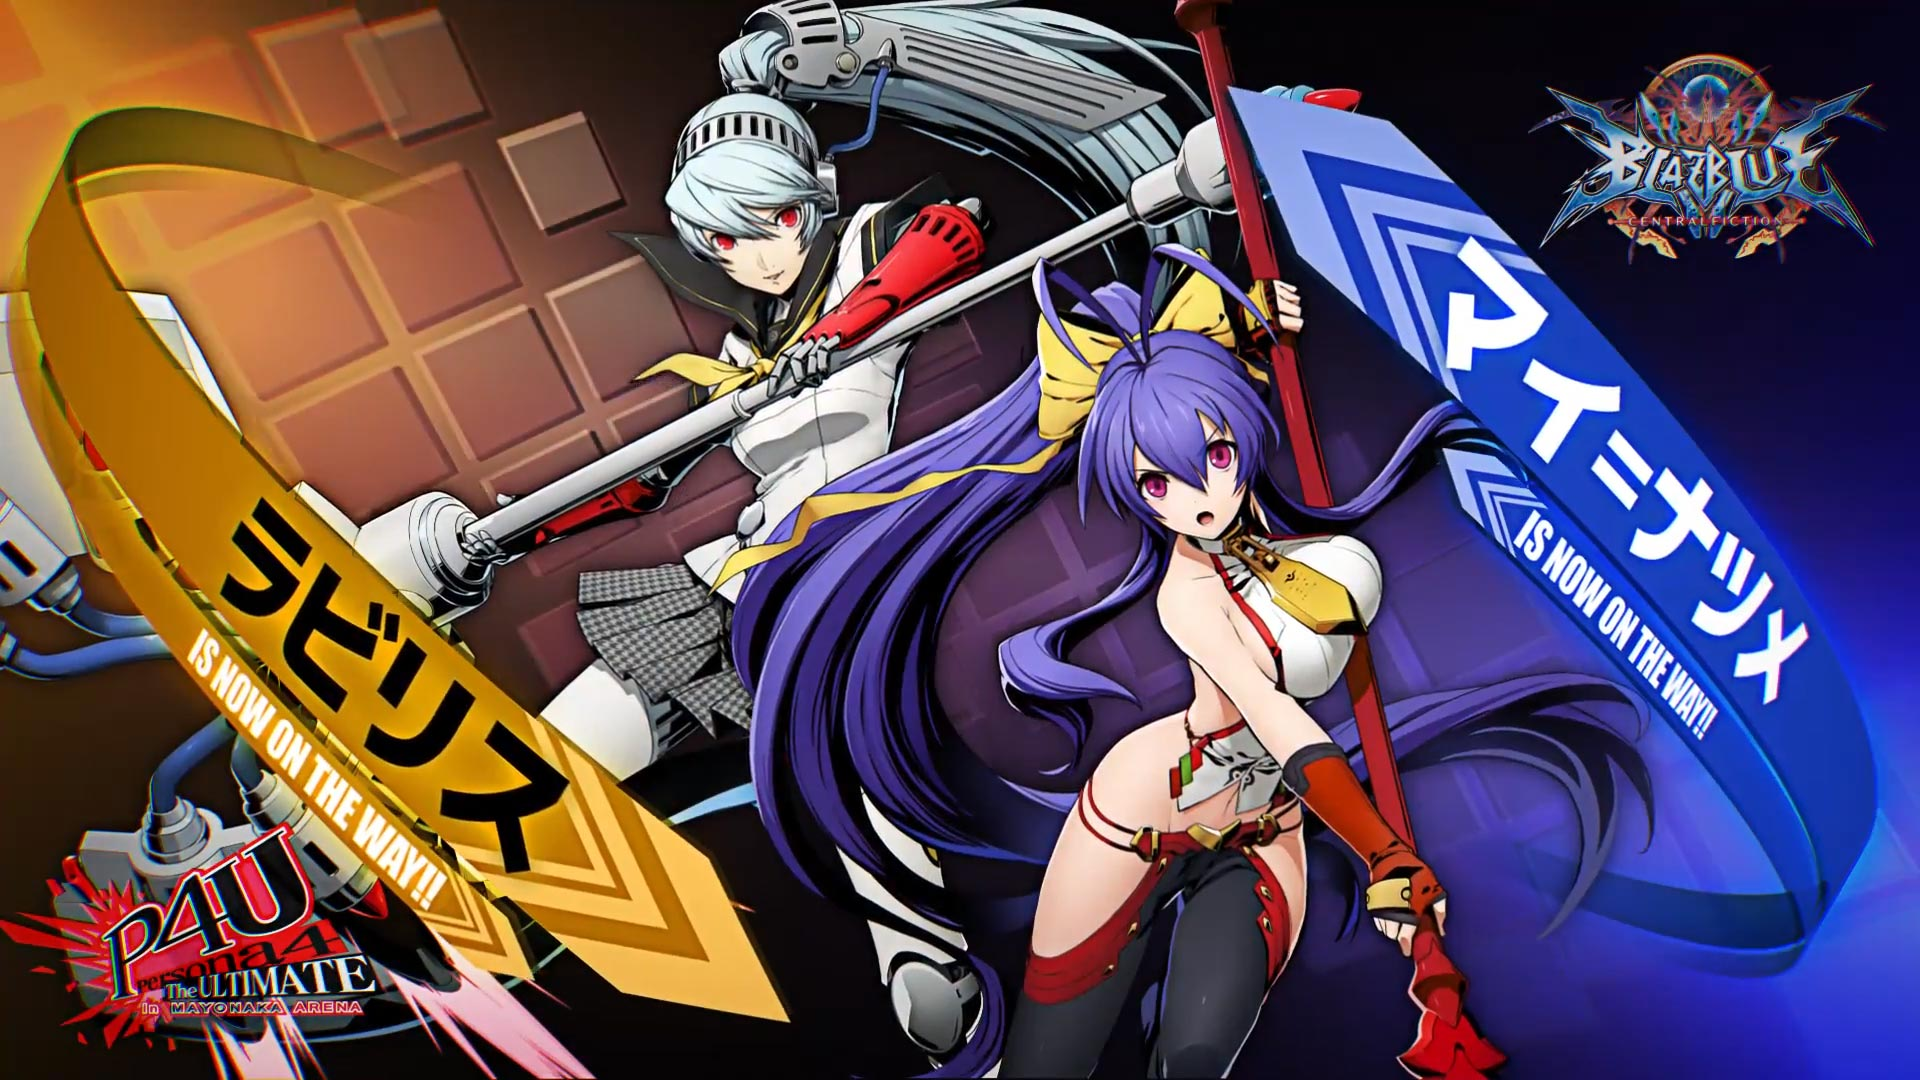 New characters announced for BlazBlue: Cross Tag Battle 5 out of 6 image gallery